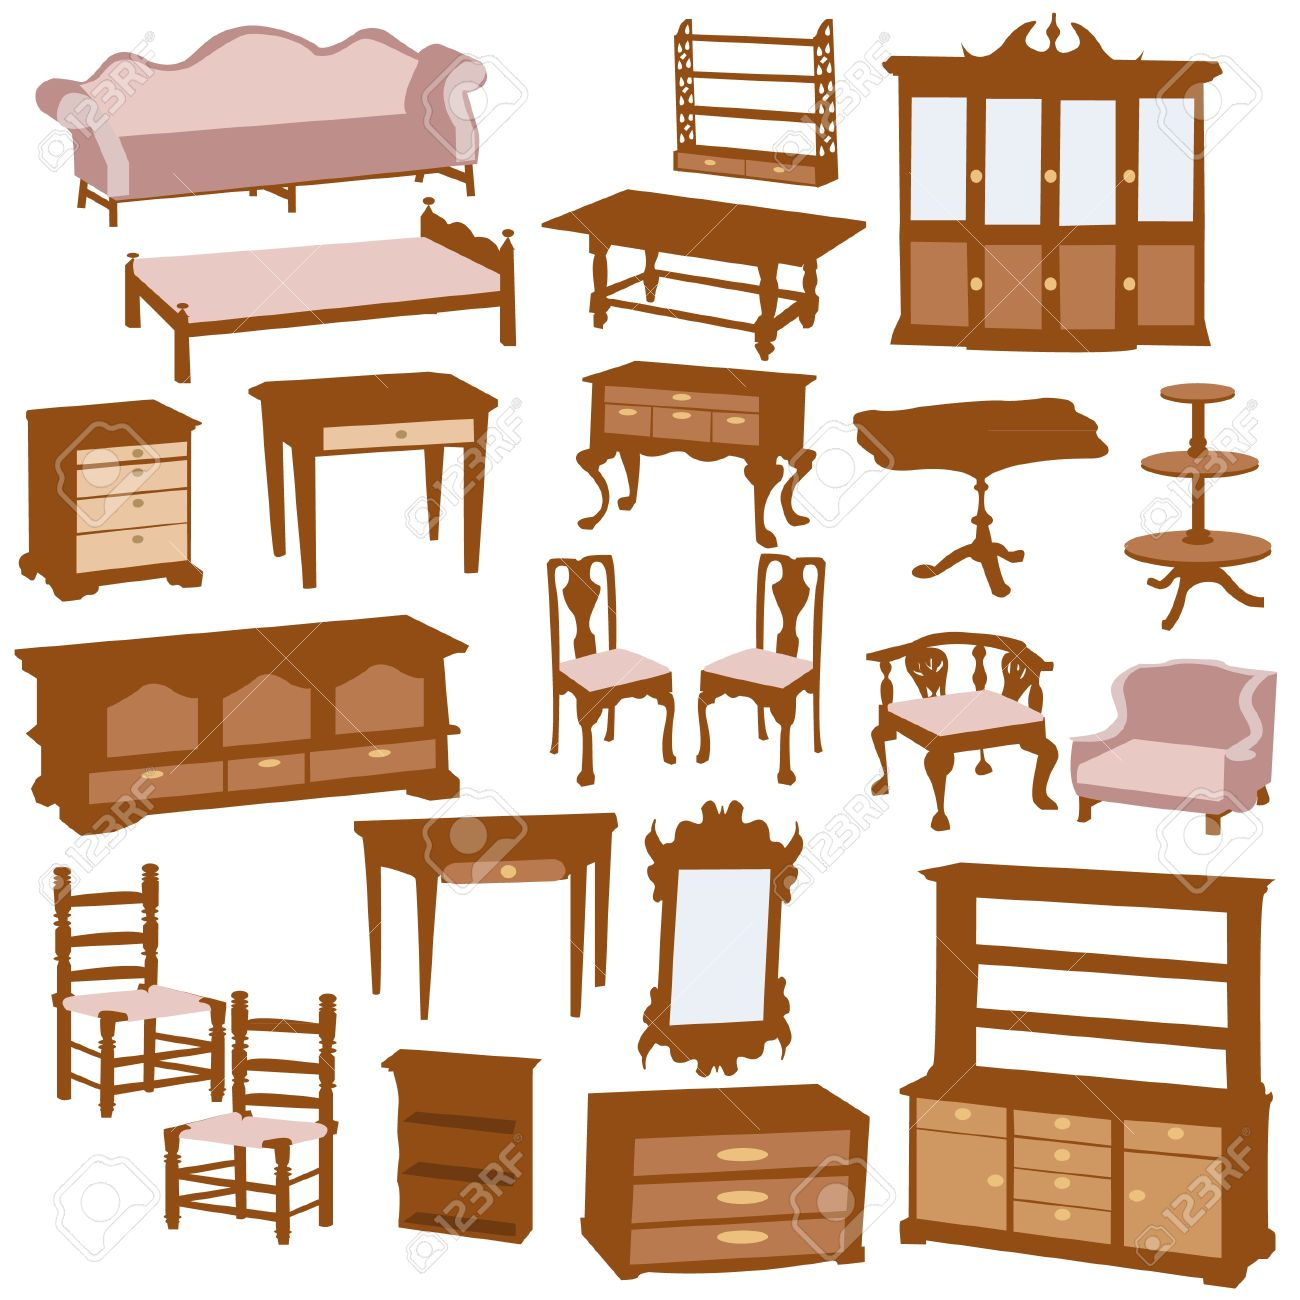 Furniture Clipart Wooden Illustration Stock Vector